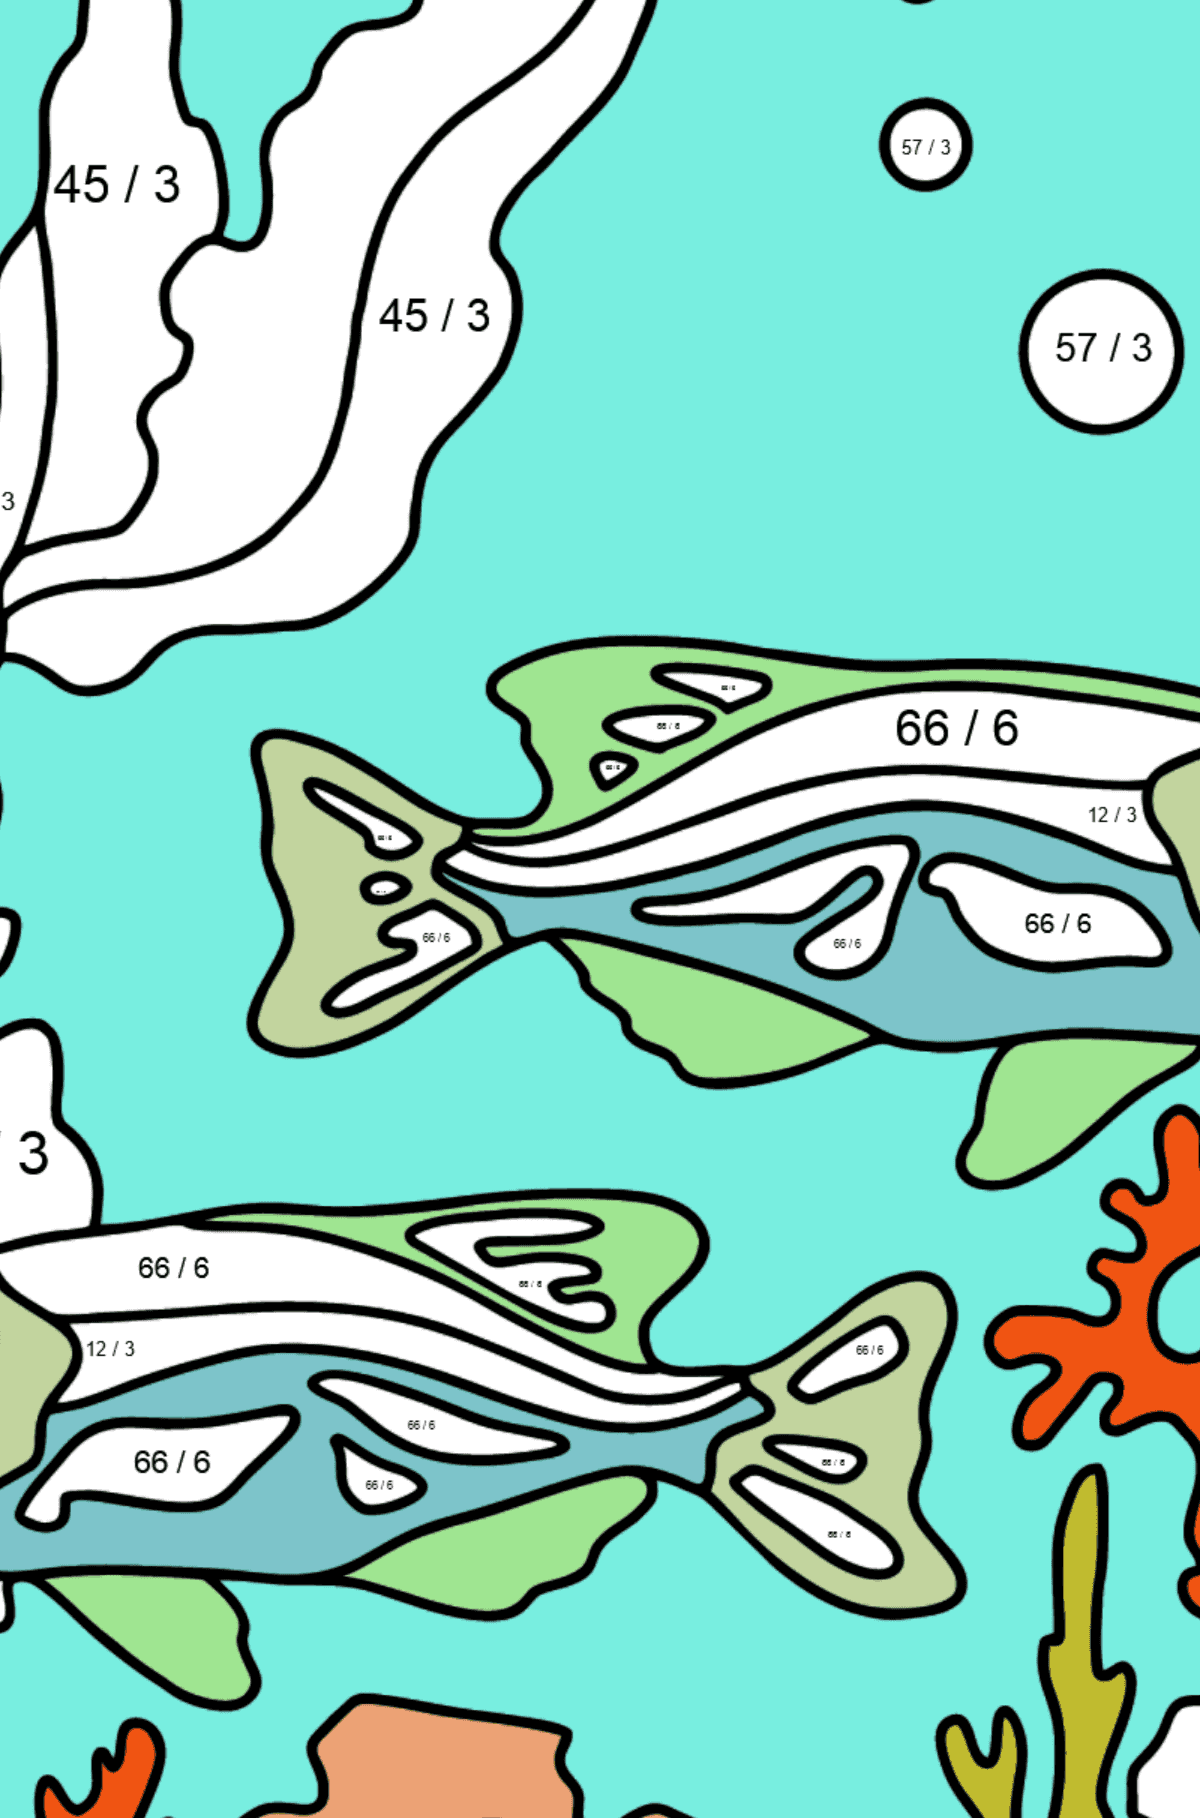 Two Fish Coloring Page - Fish are Swimming Beautifully - Math Coloring - Division for Kids